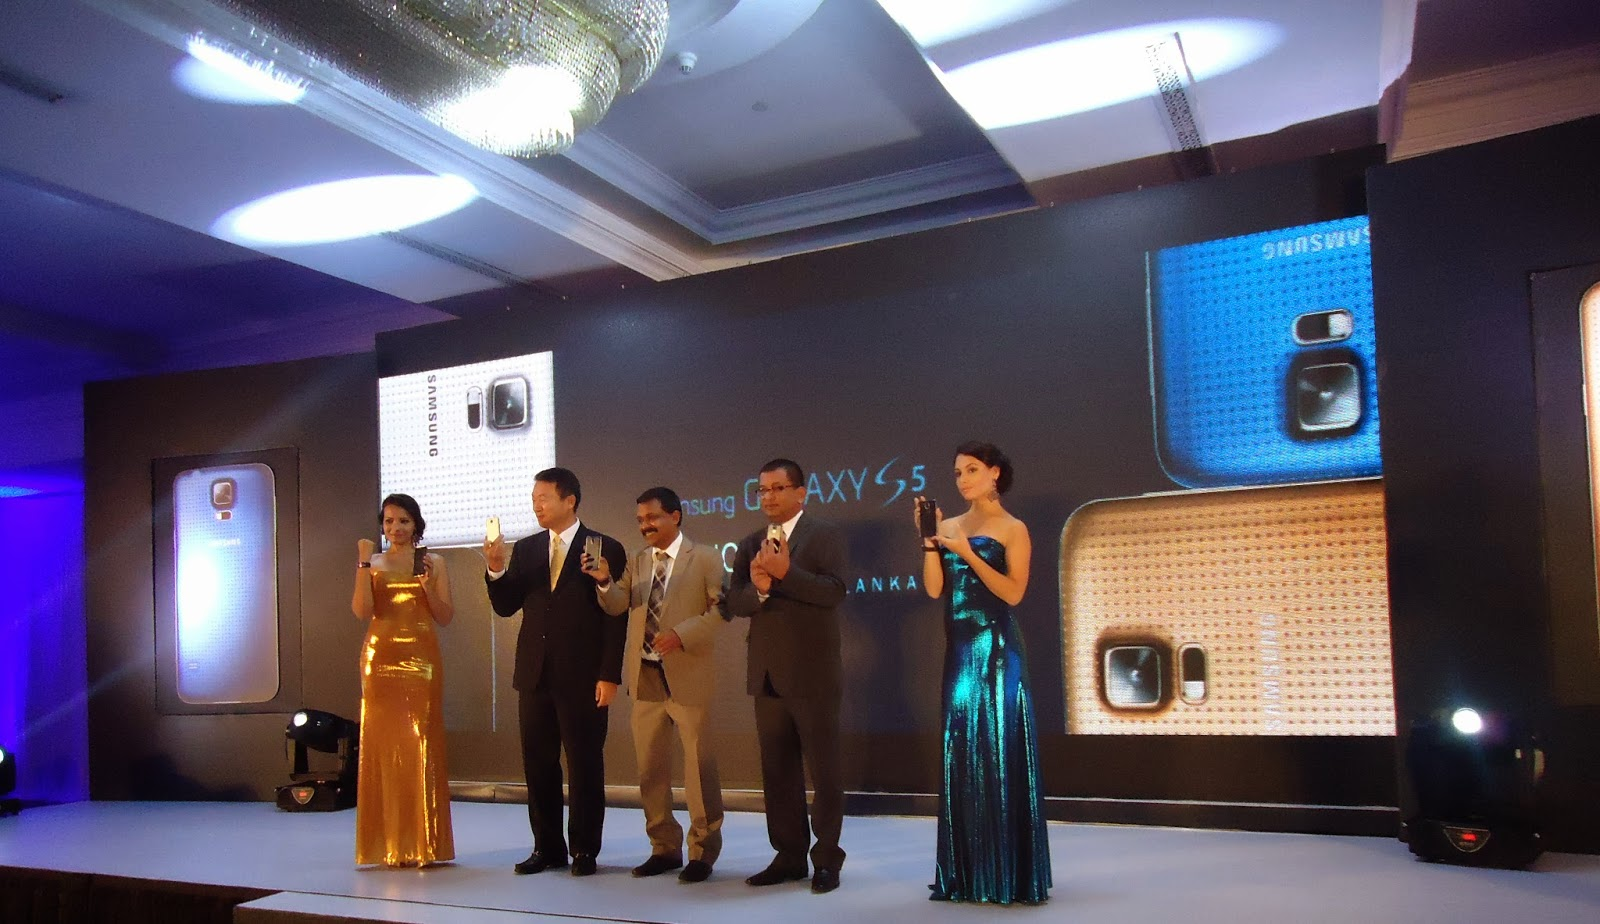 Samsung launches Galaxy S5 in Sri Lanka